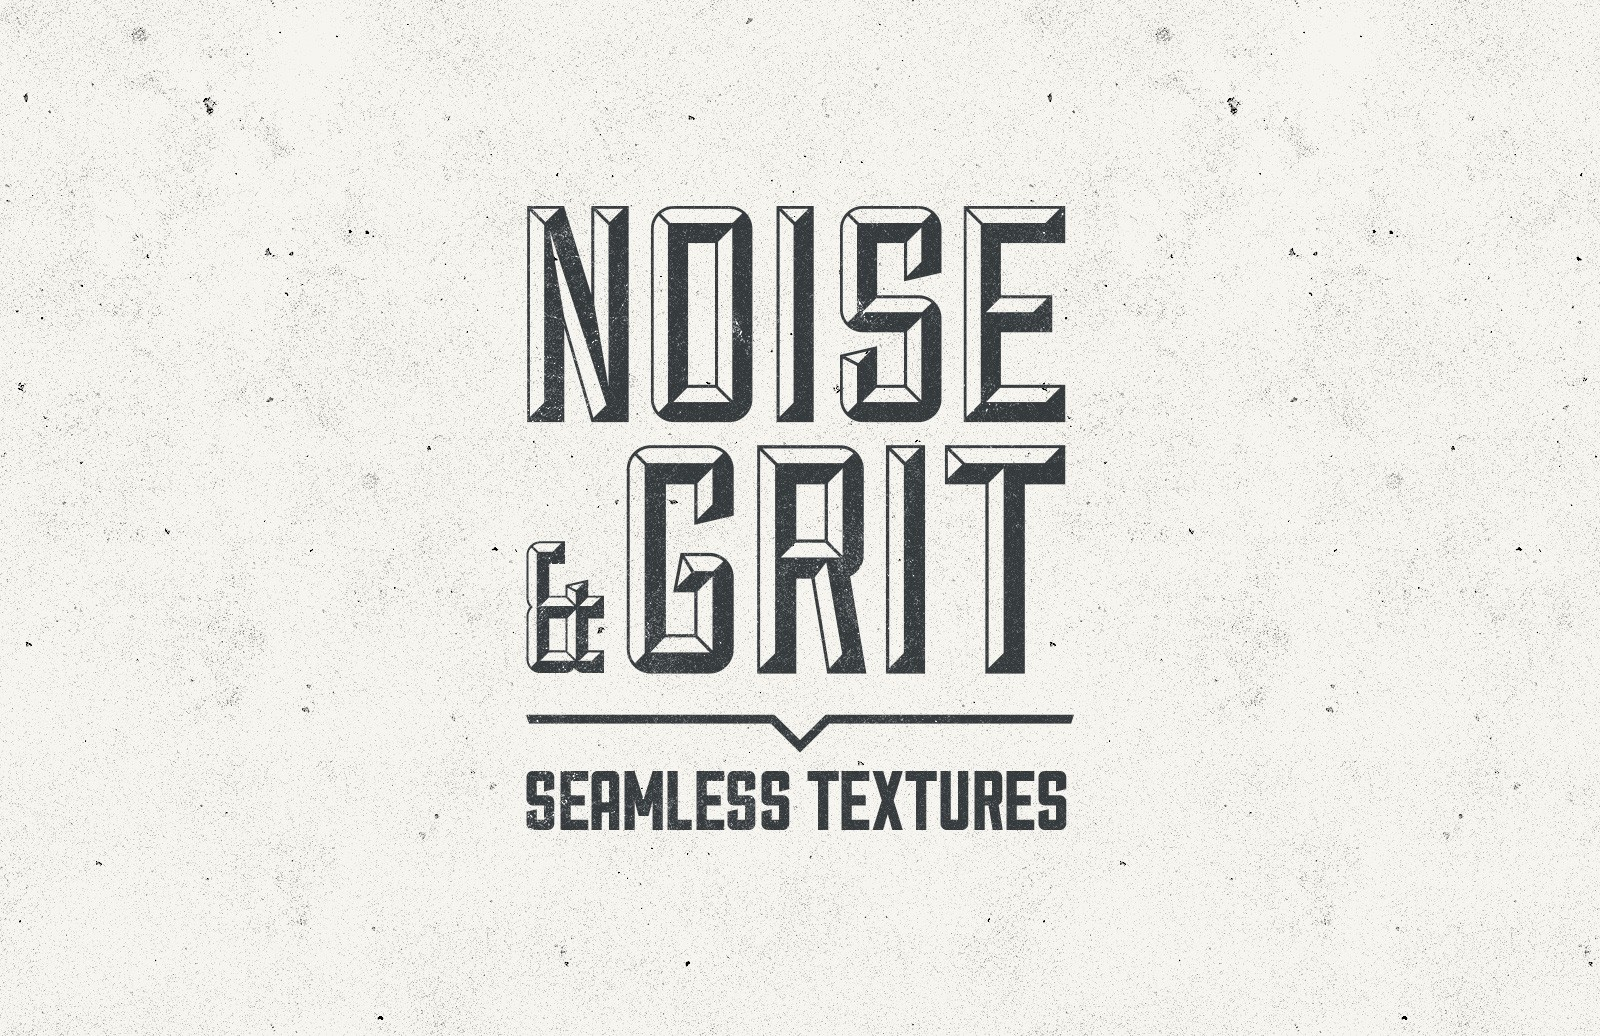 Large Noise   Grit  Seamless  Textures  Preview 1